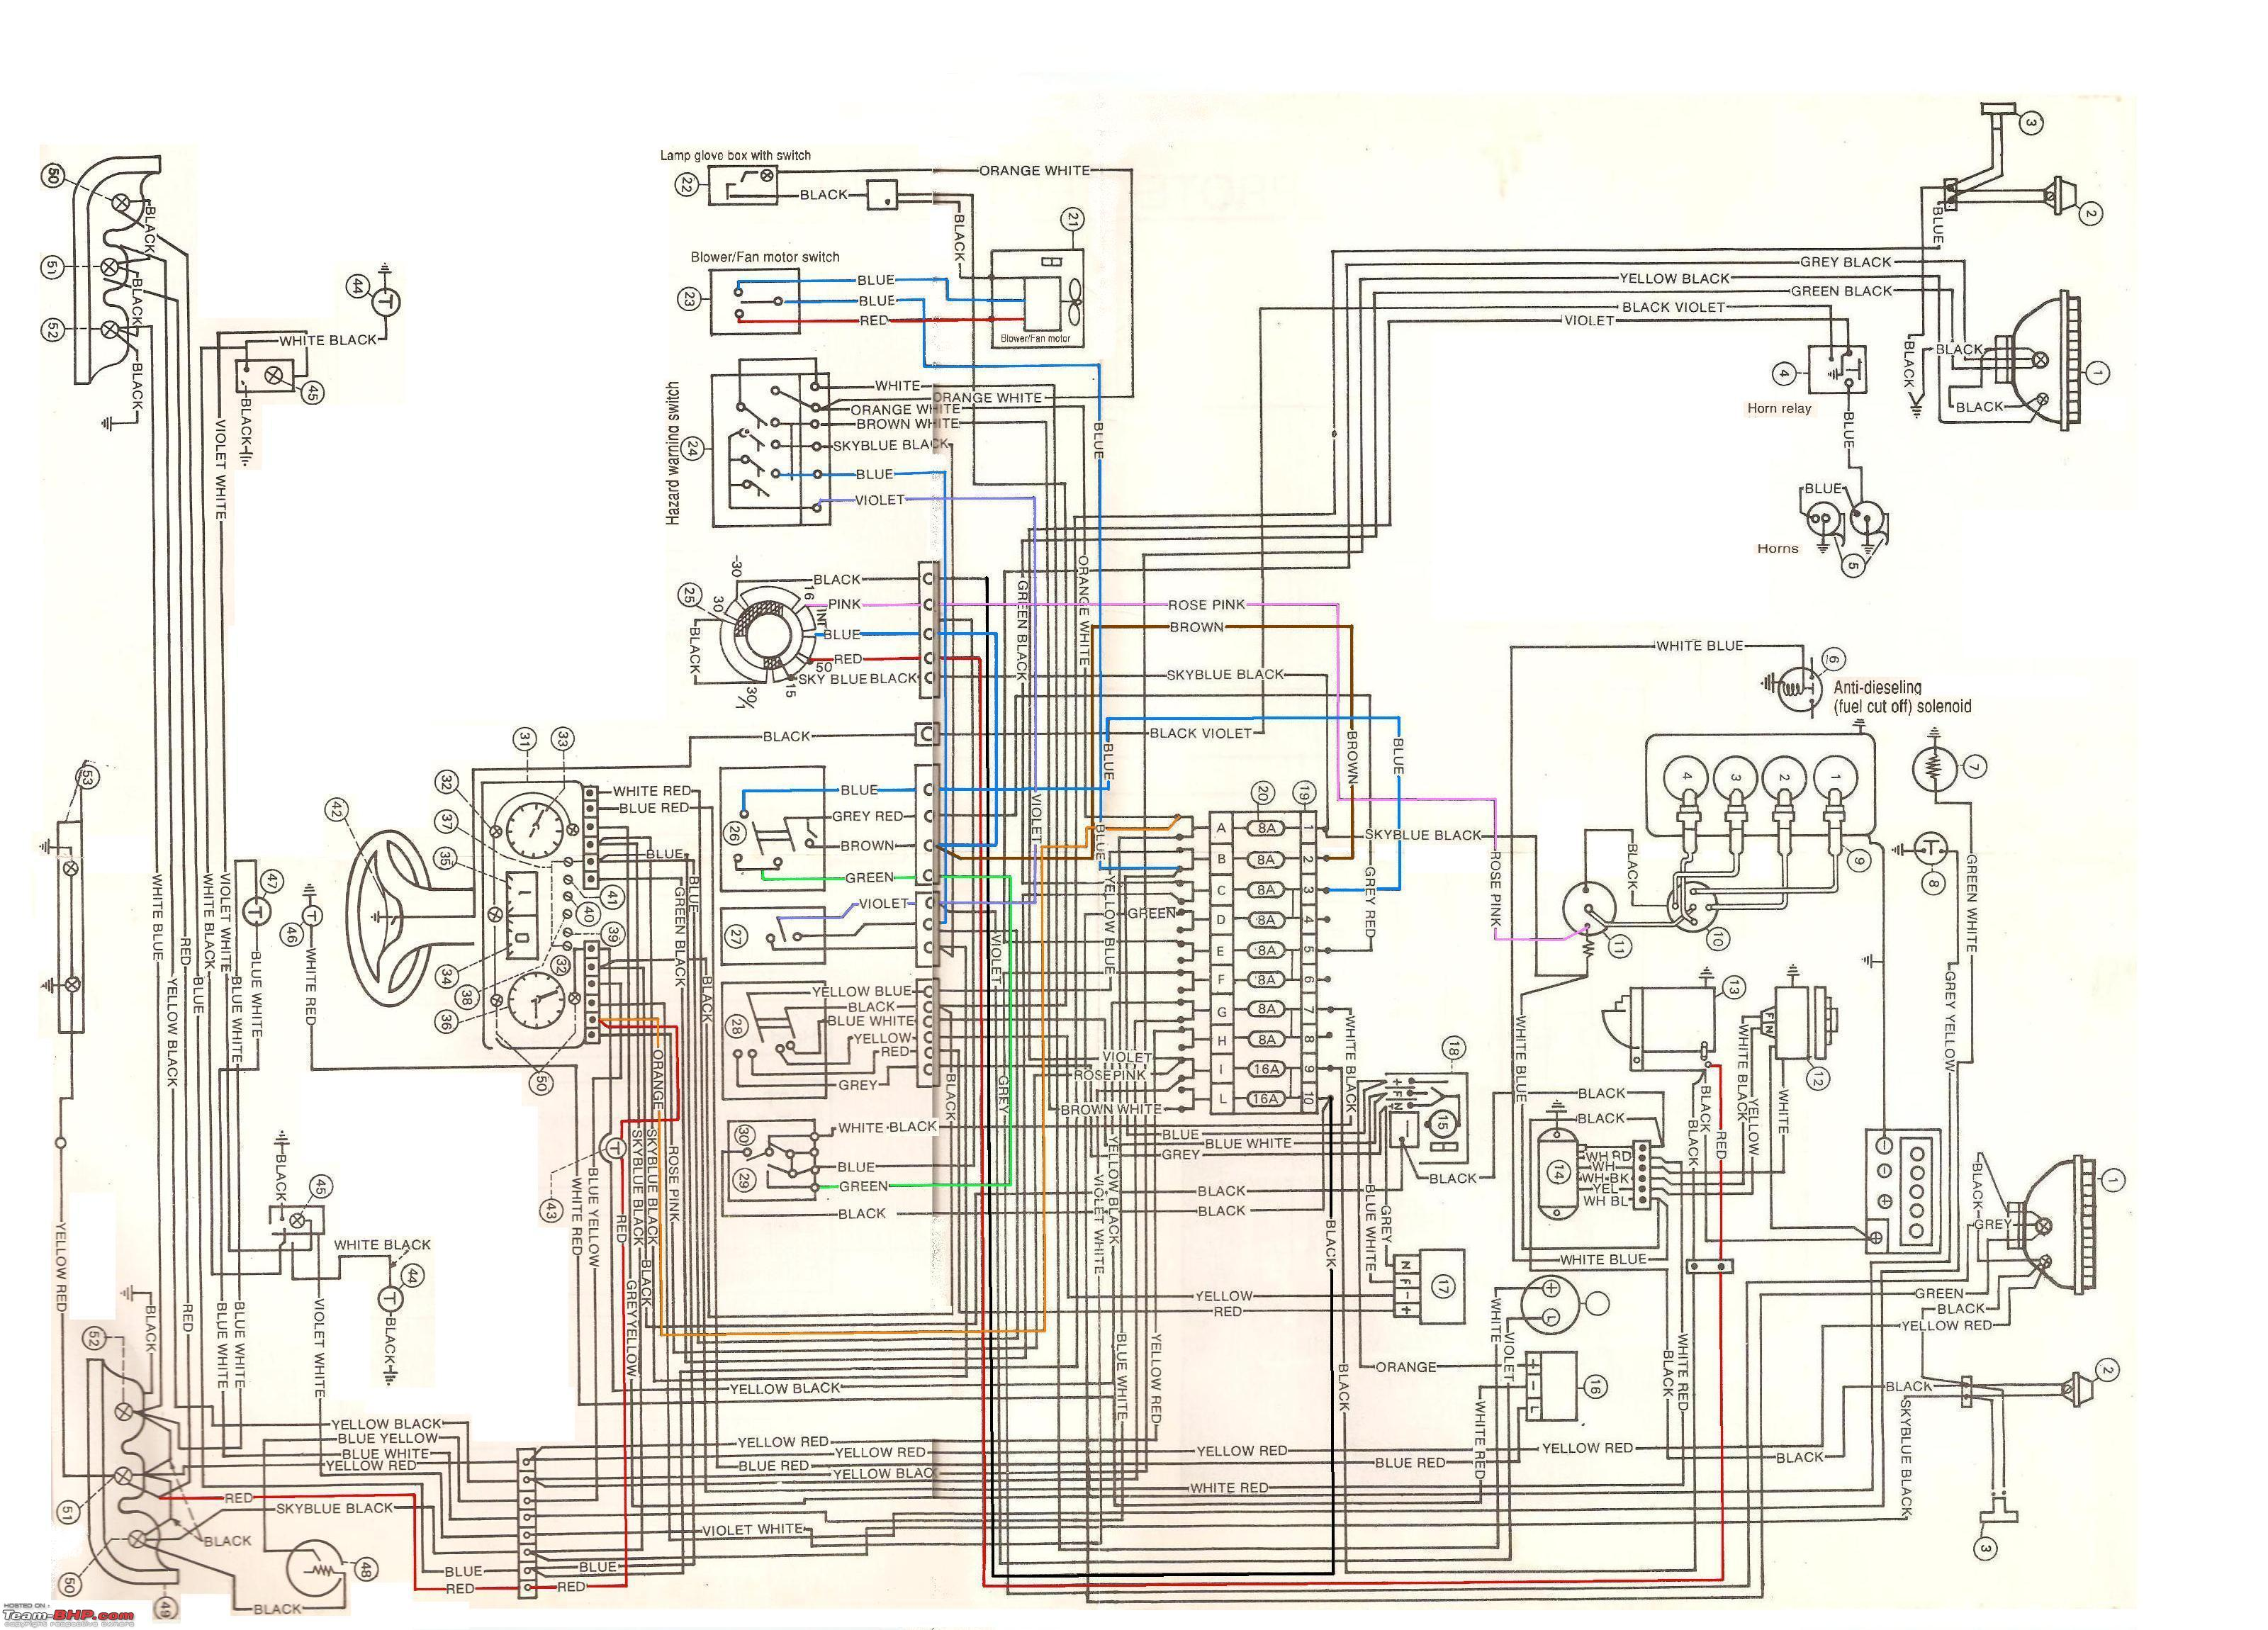 Wiring Harness Car Stereo Instructions Free Download Wiring Diagrams